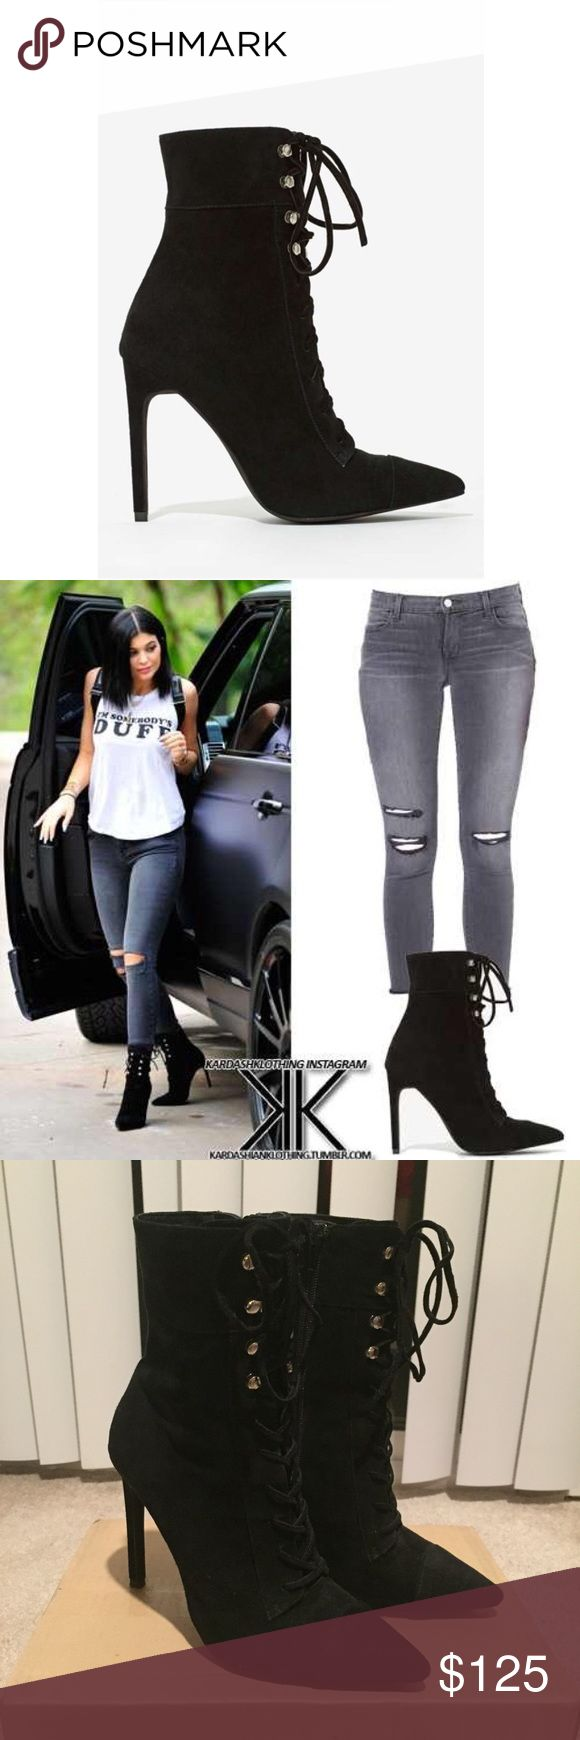 Jeffrey Campbell Elphaba Corset Lace Up Boots Jeffrey Campbell Elphaba Corset Lace Up boots in black suede. Silver tone hooks. Inside zip closure. US women's size 7. Worn a handful of times, still in very good condition! As seen on Kylie Jenner. Jeffrey Campbell Shoes Lace Up Boots